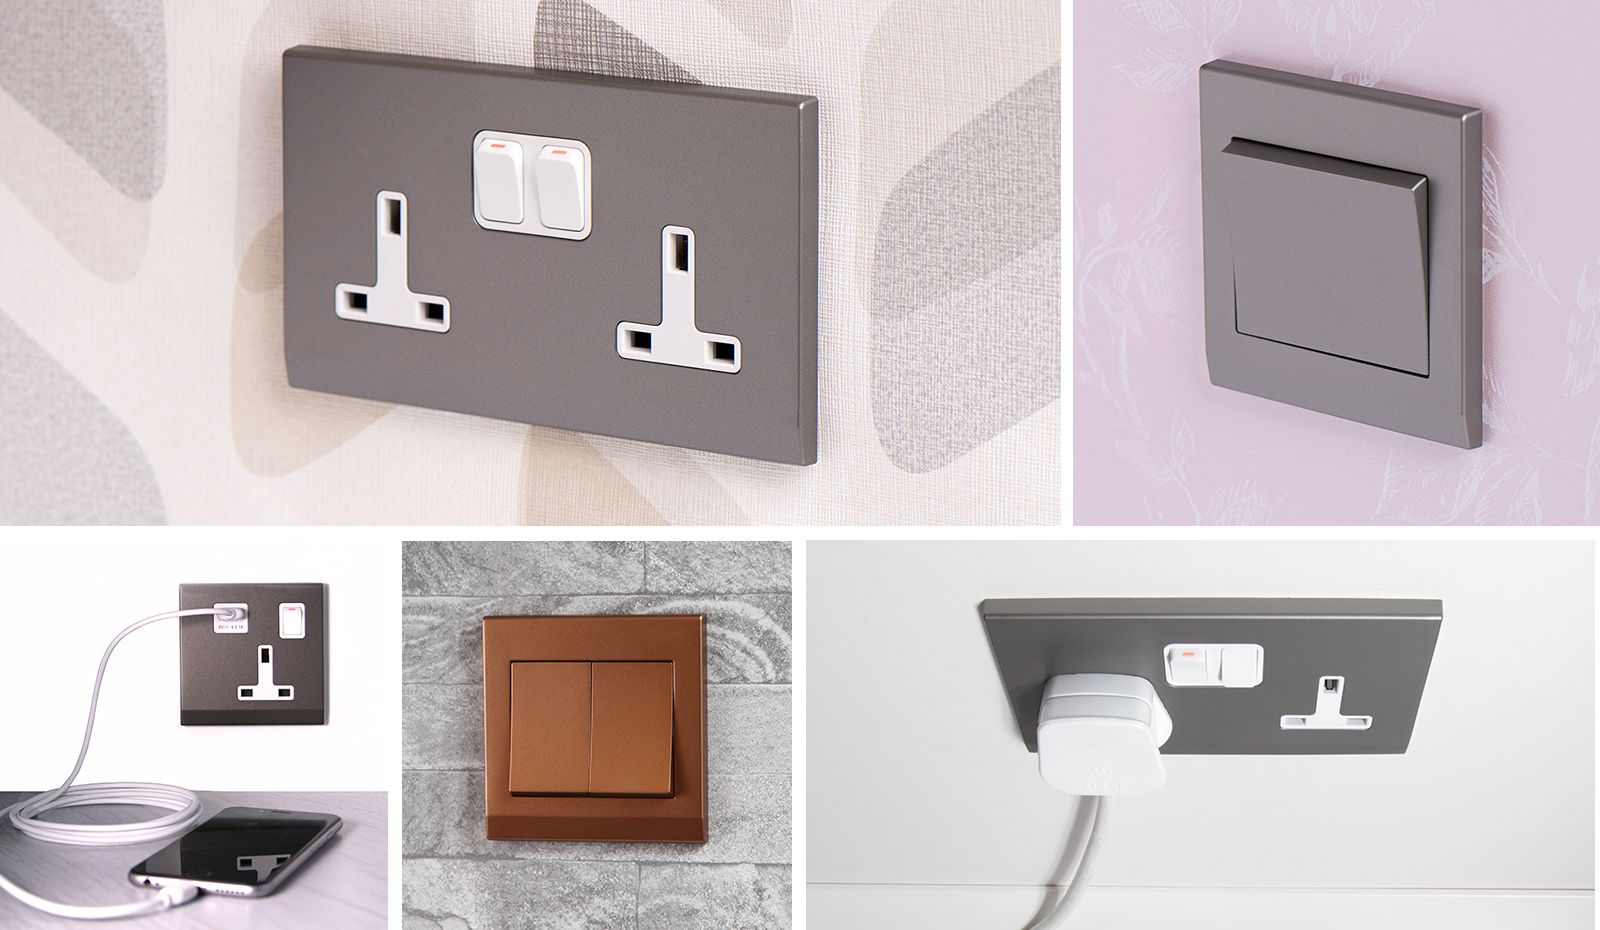 Simplicity - RetroTouch Designer Light Switches & Plug Sockets